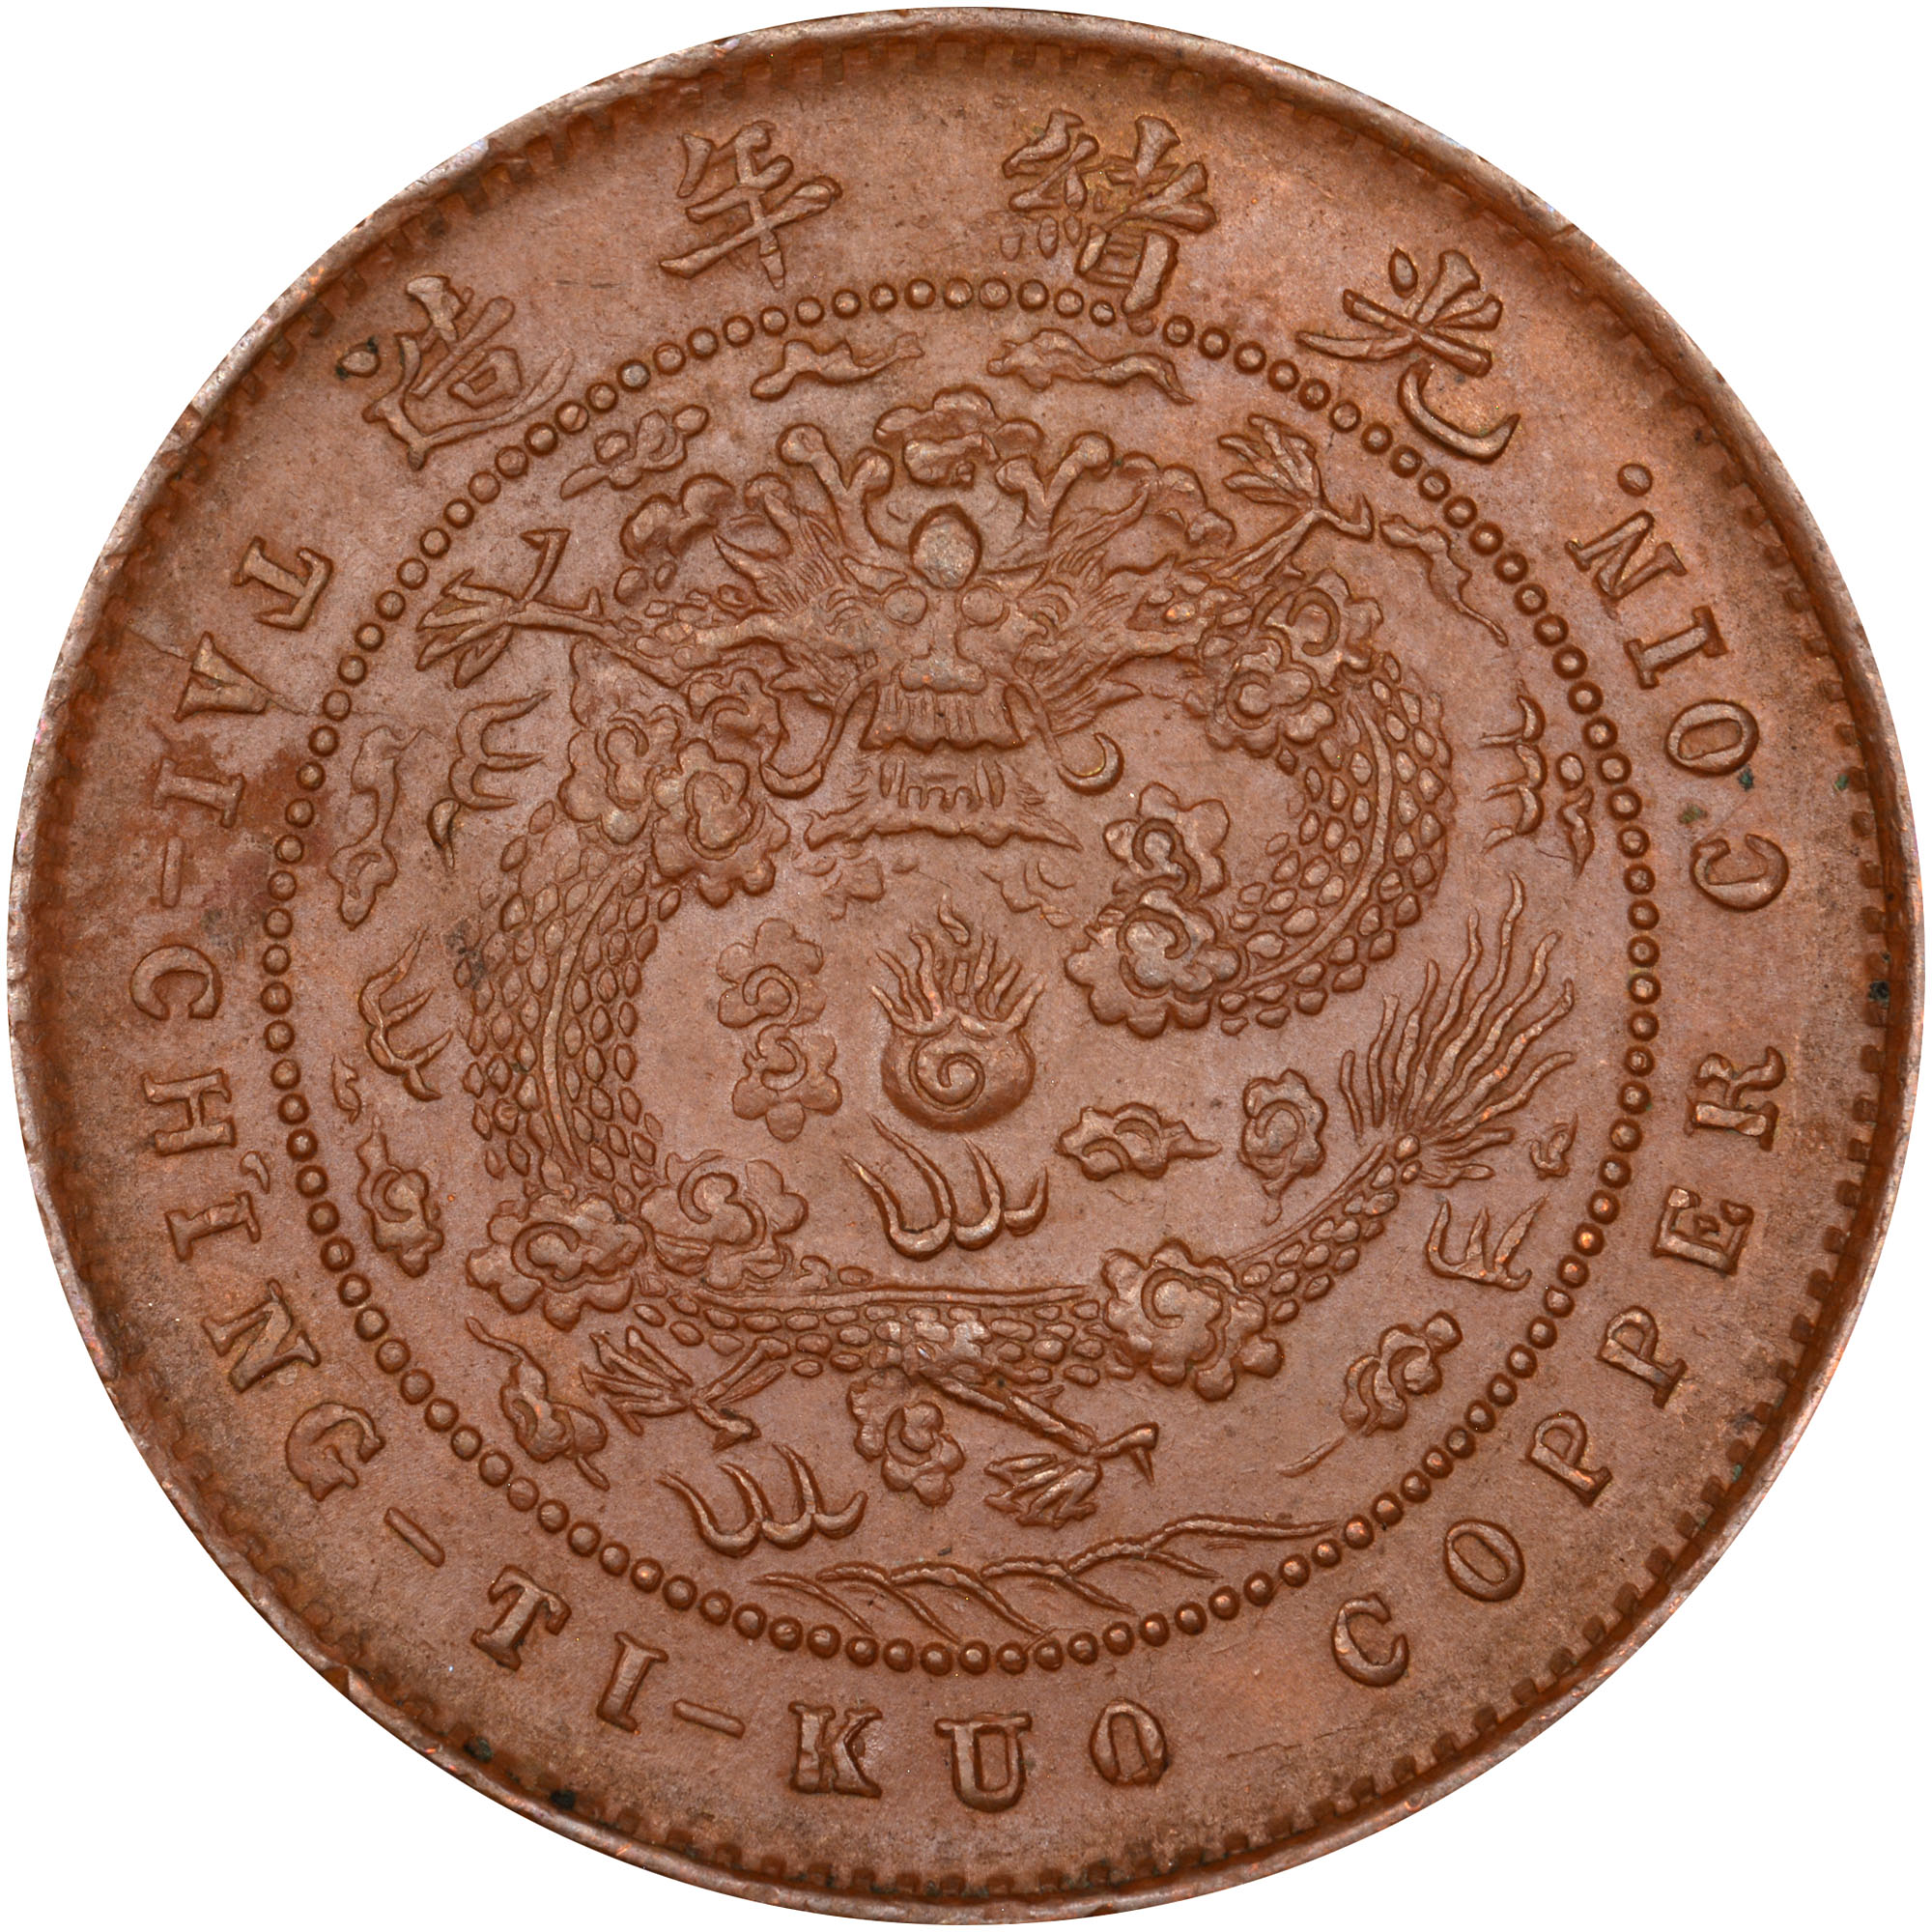 1906 CHINA CHEKIANG PROVINCE 5 Cash reverse